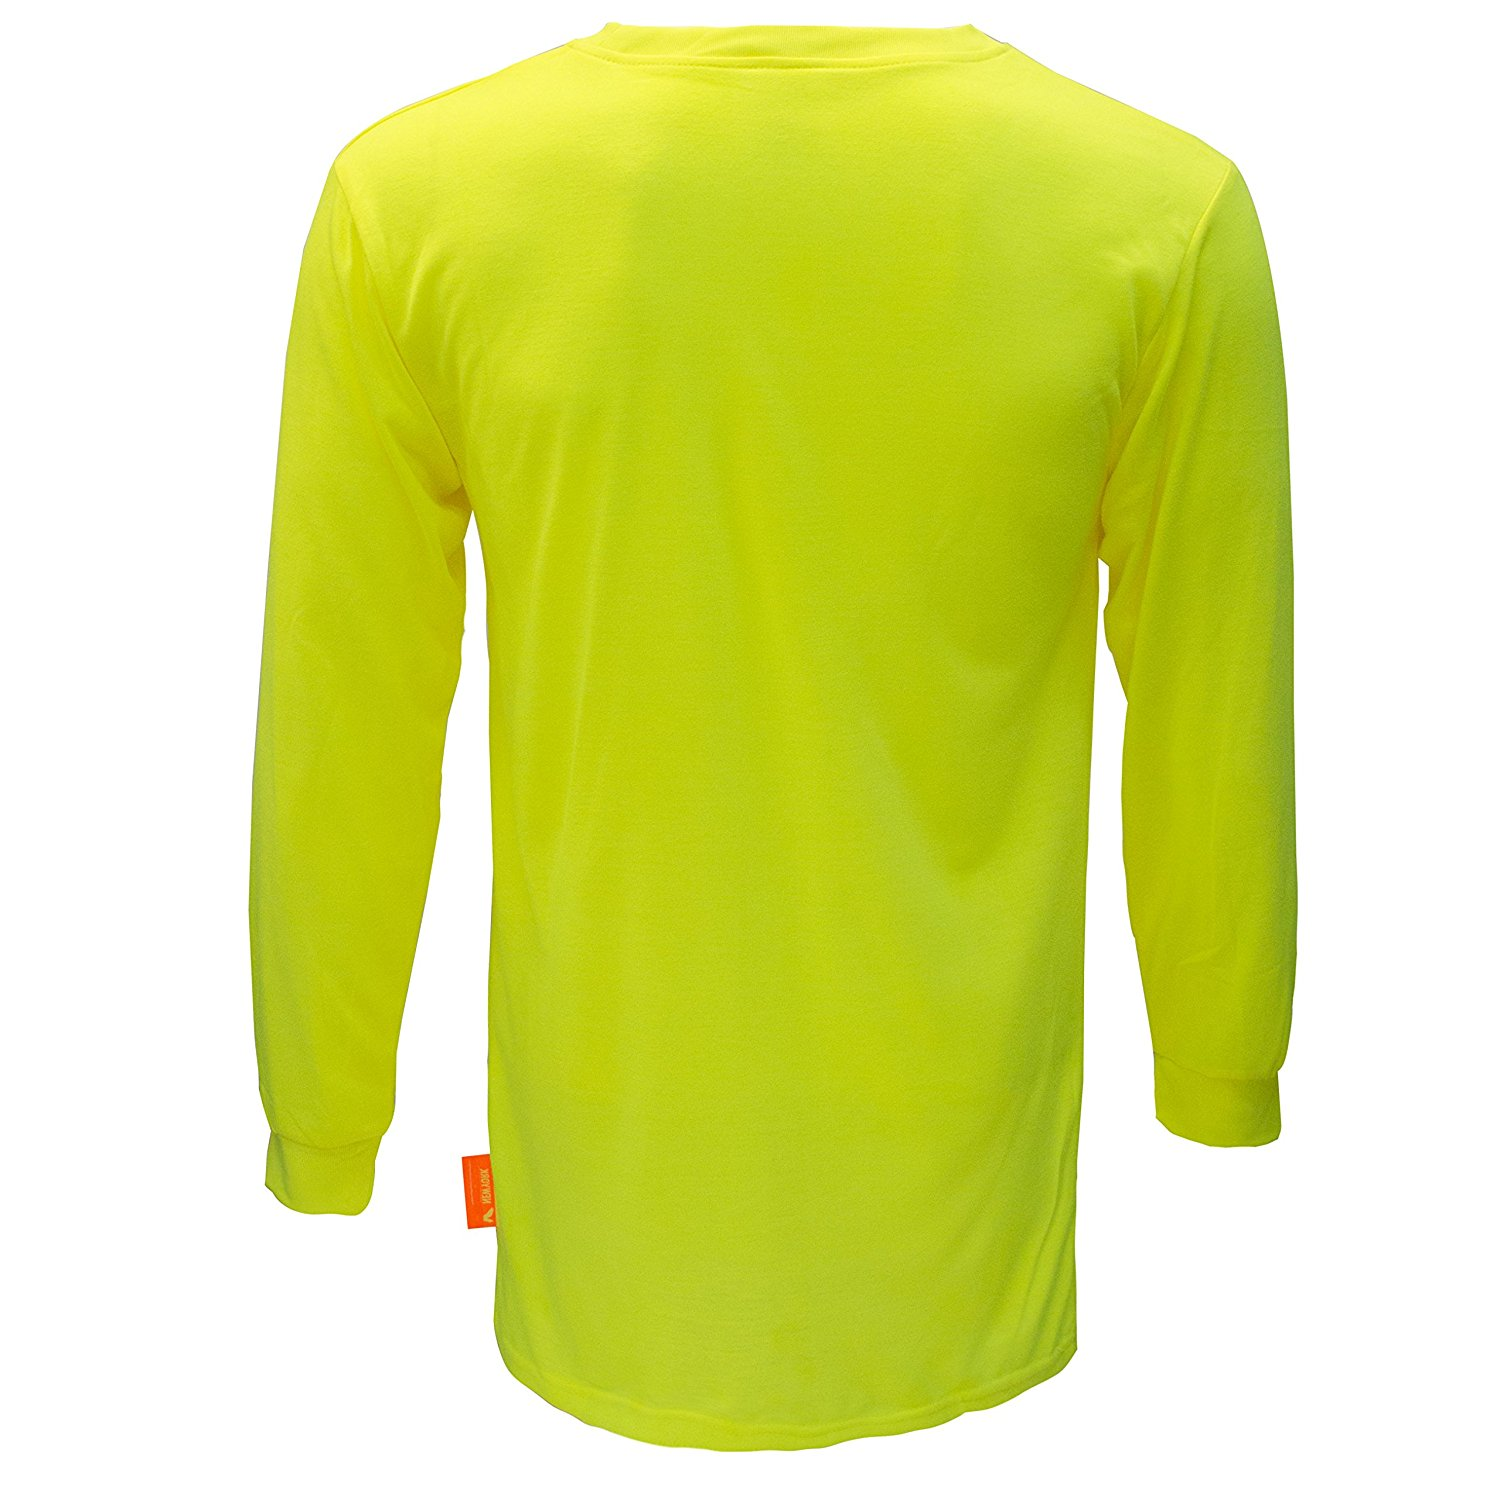 Long Sleeve High-Visibility Force Color Enhanced Safety Shirt - RK Industries Group. Inc.